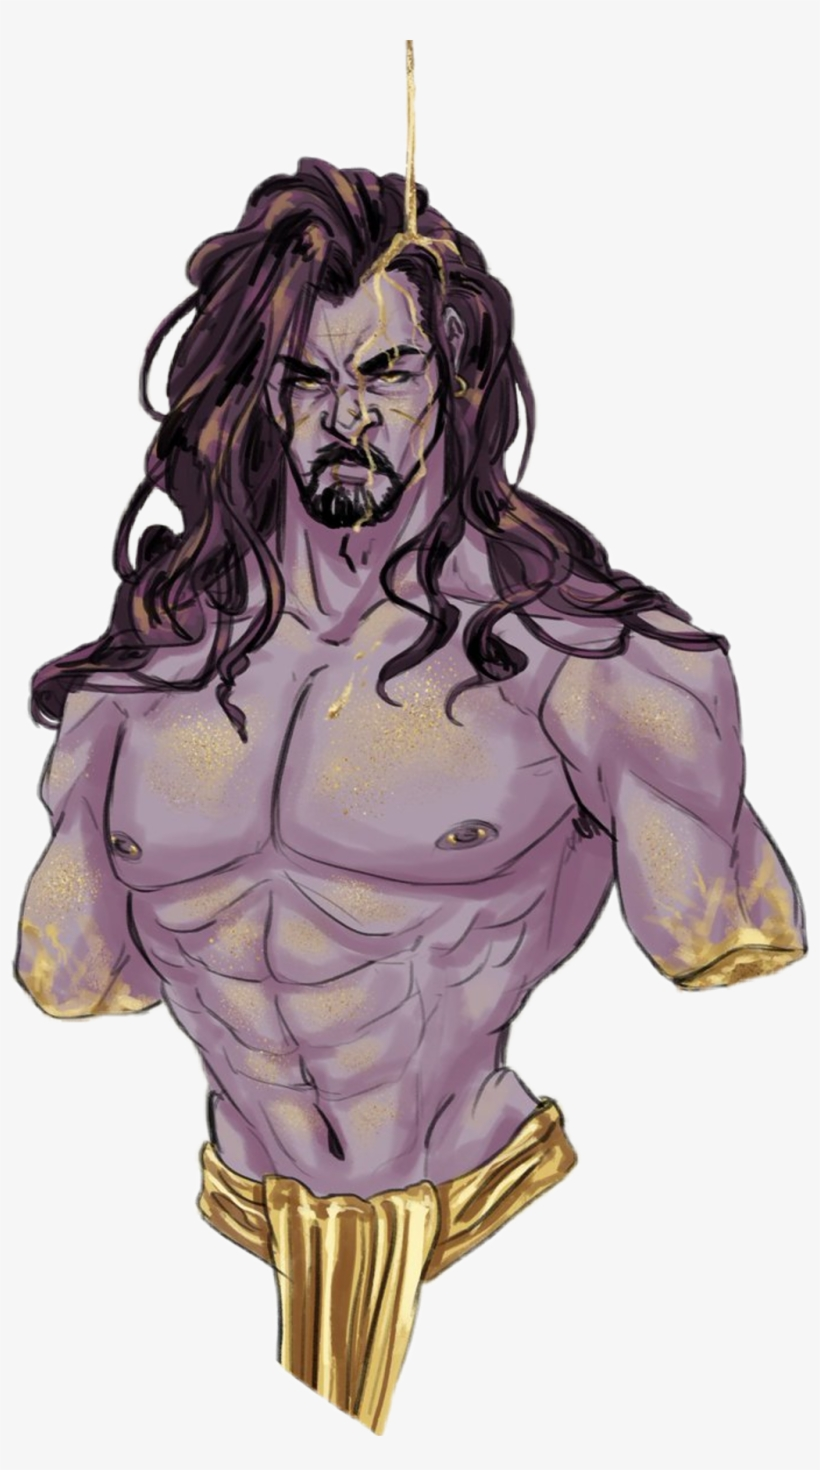 Anime Overwatch Hanzo Gabriel Reyes Long Hair Transparent Png 1024x1787 Free Download On Nicepng